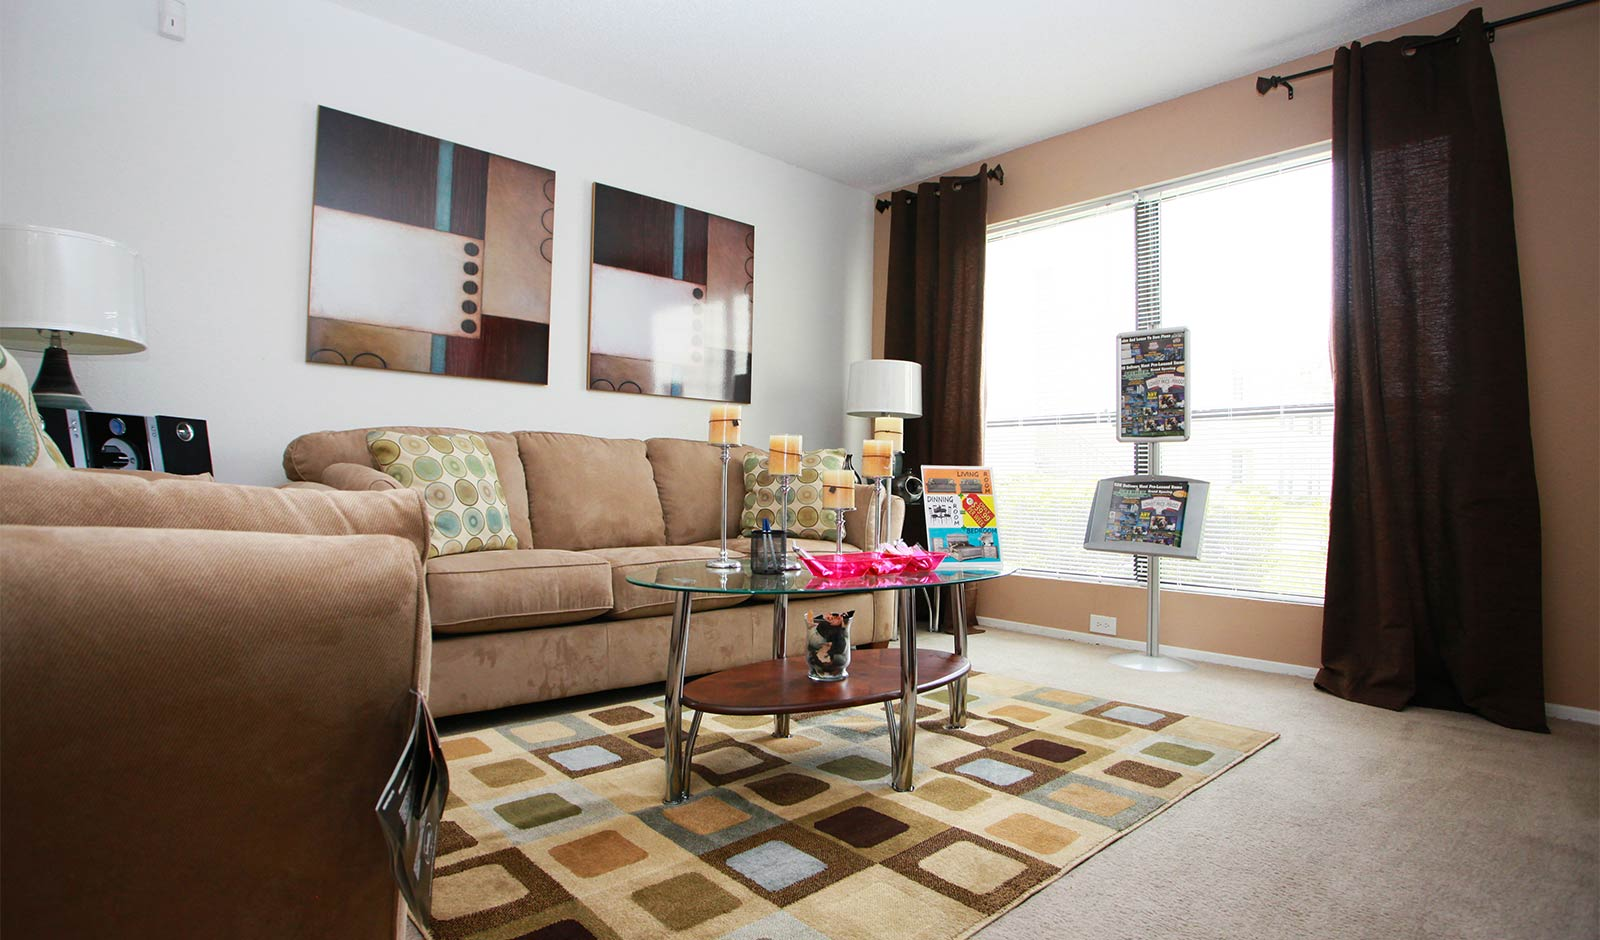 2 3 Bedroom Apartments In Pembroke Pines With Ceiling Fans